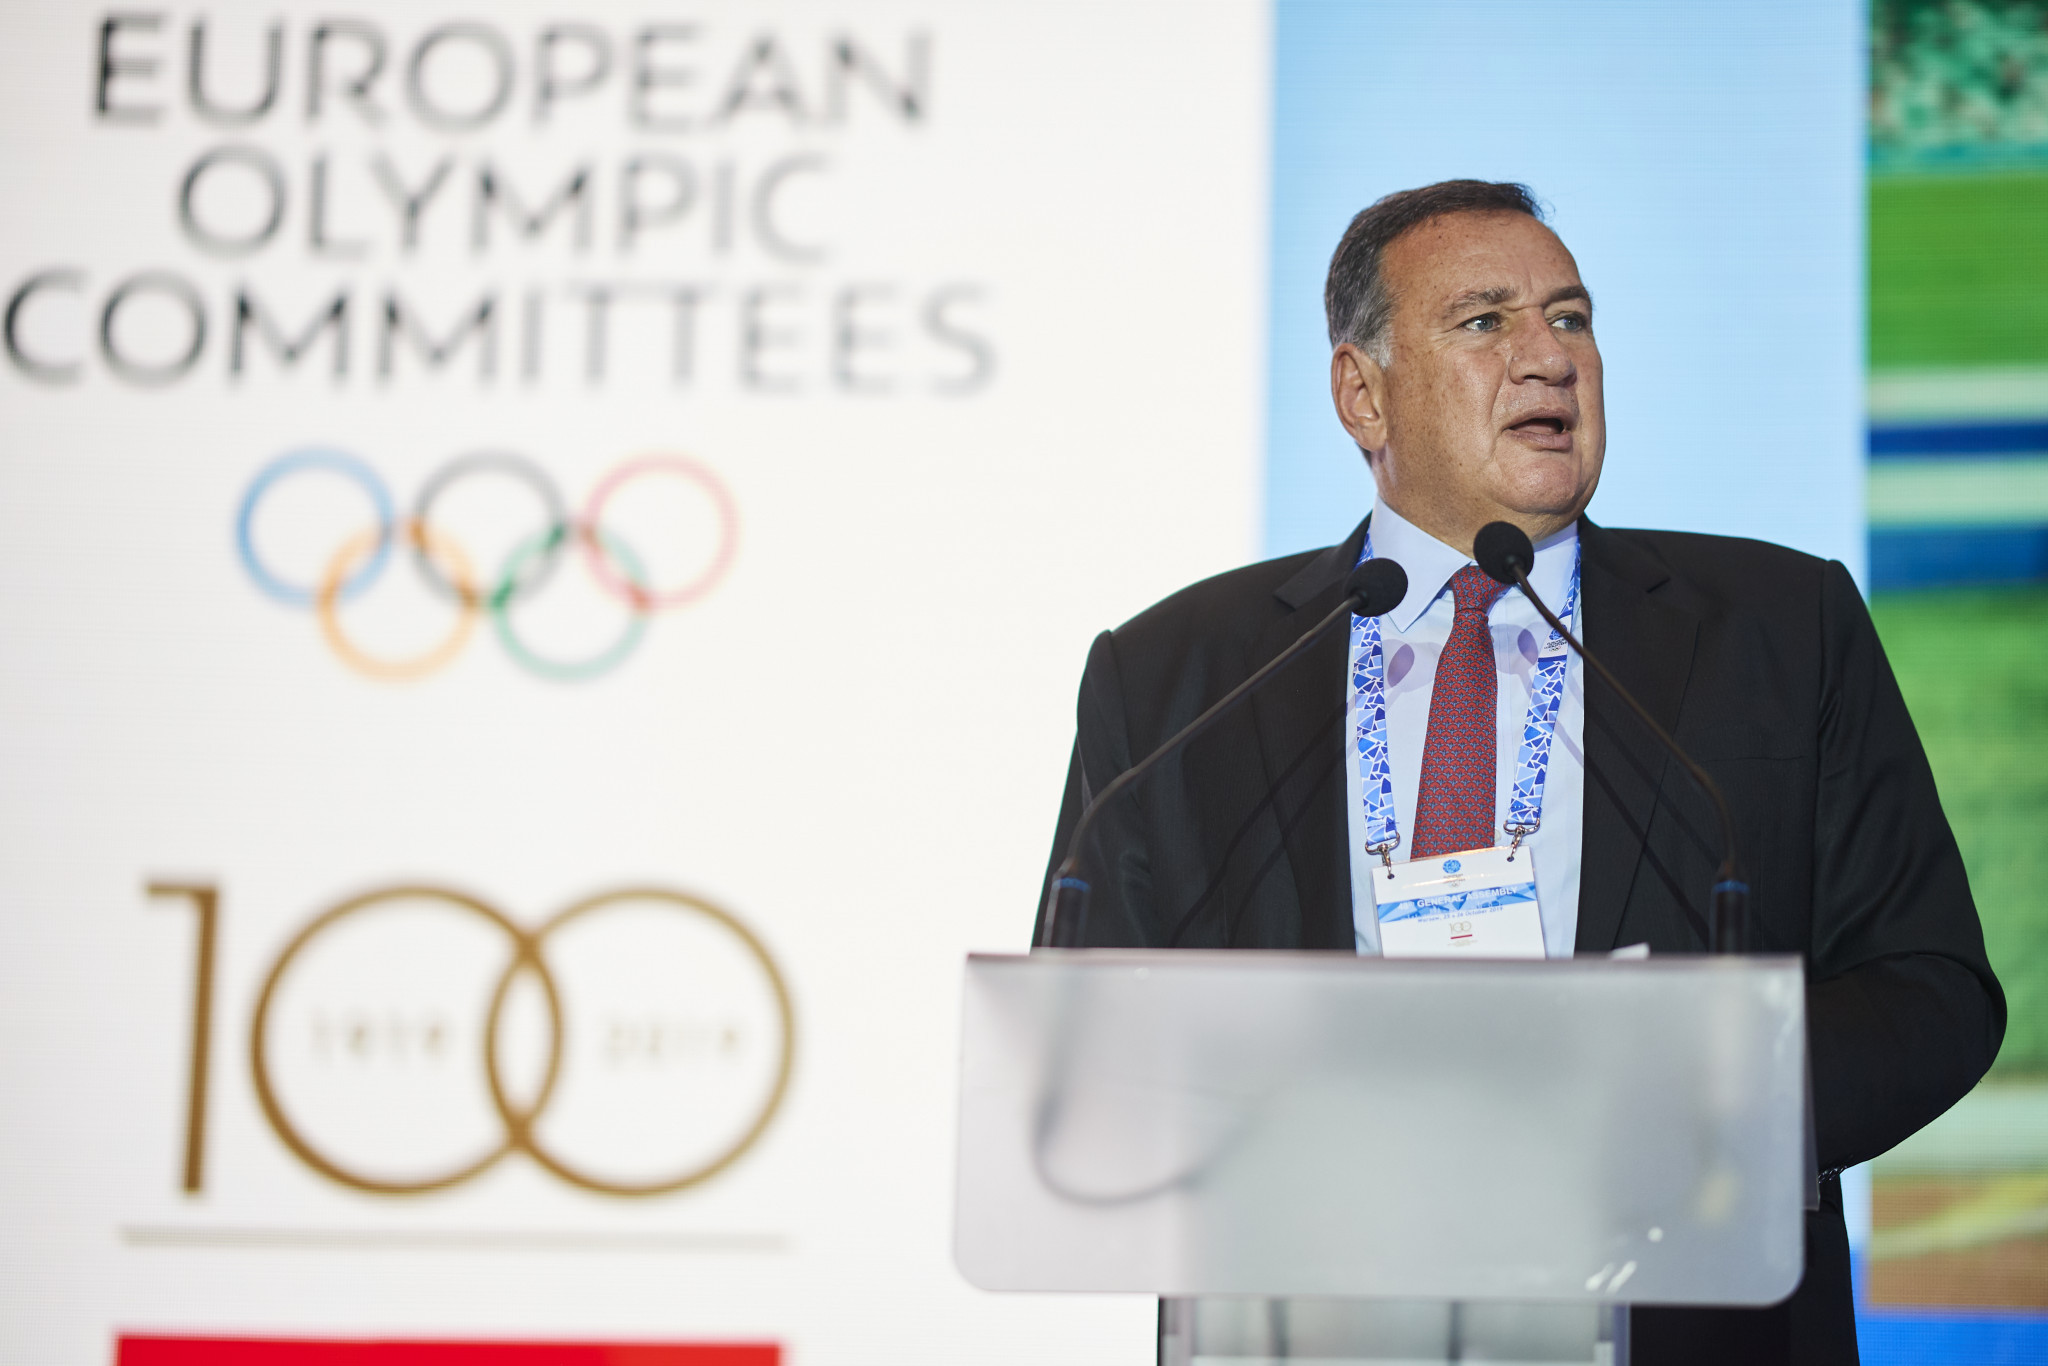 Minsk 2019 Coordination Commission chairman Spyros Capralos urged the EOC to find a way of making the European Games sustainable ©EOC